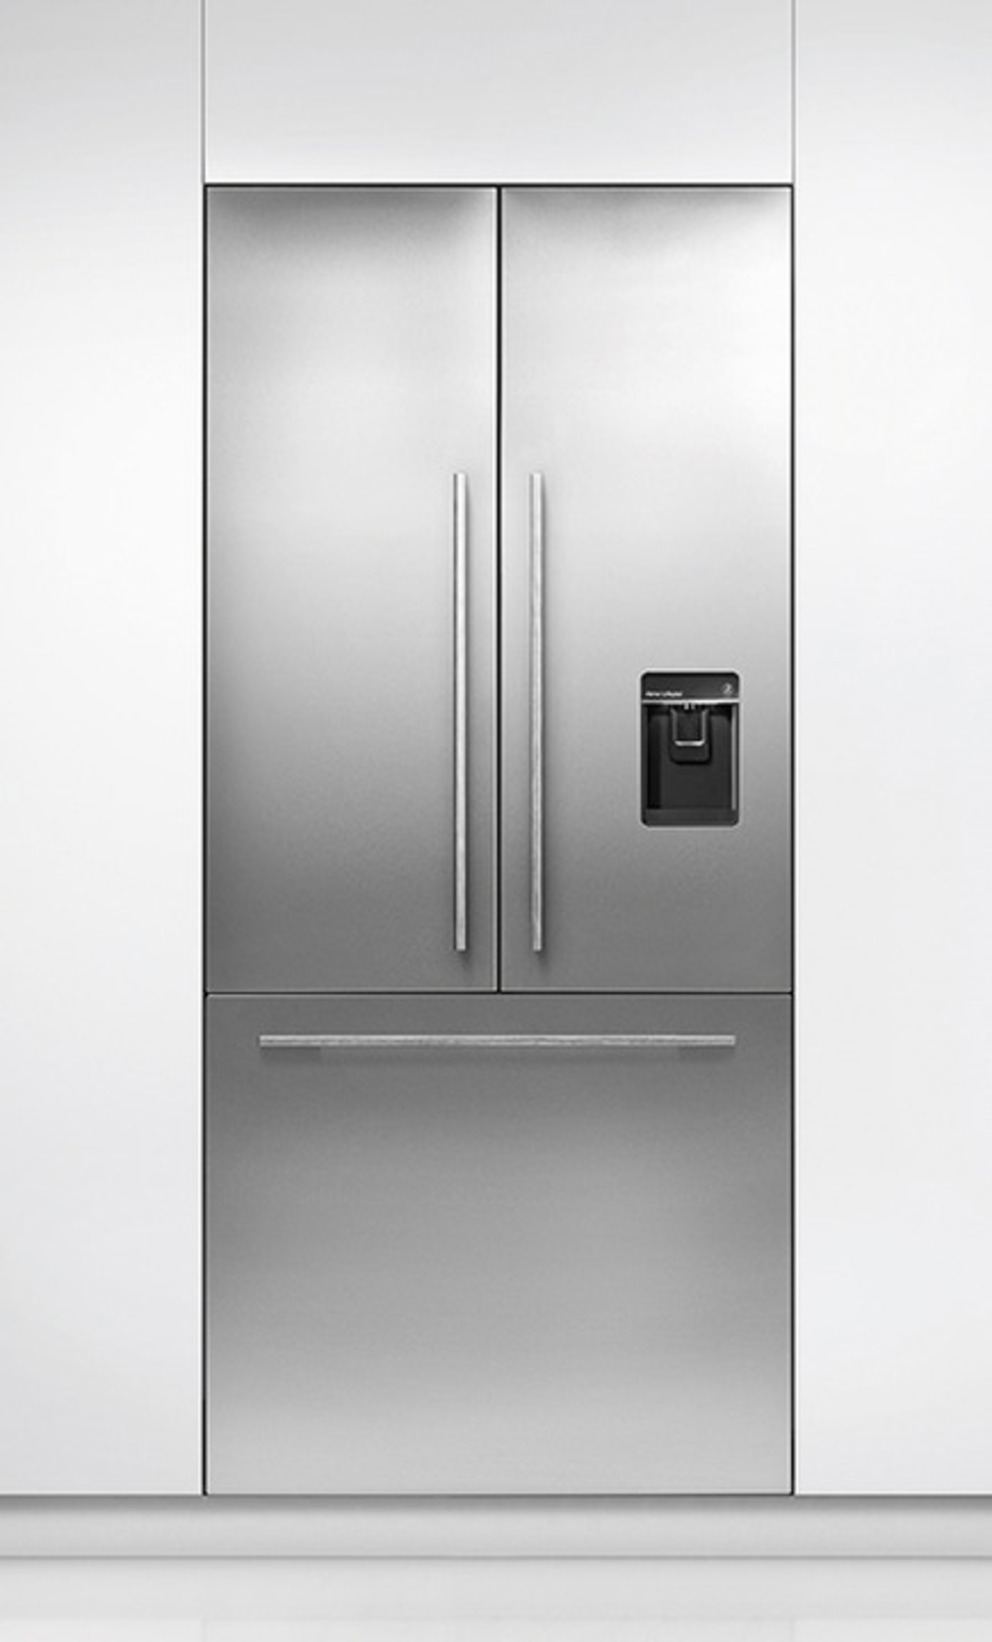 Fridges Fisher&Paykel RS36A80U1 + RD3684U (84'' F&P)